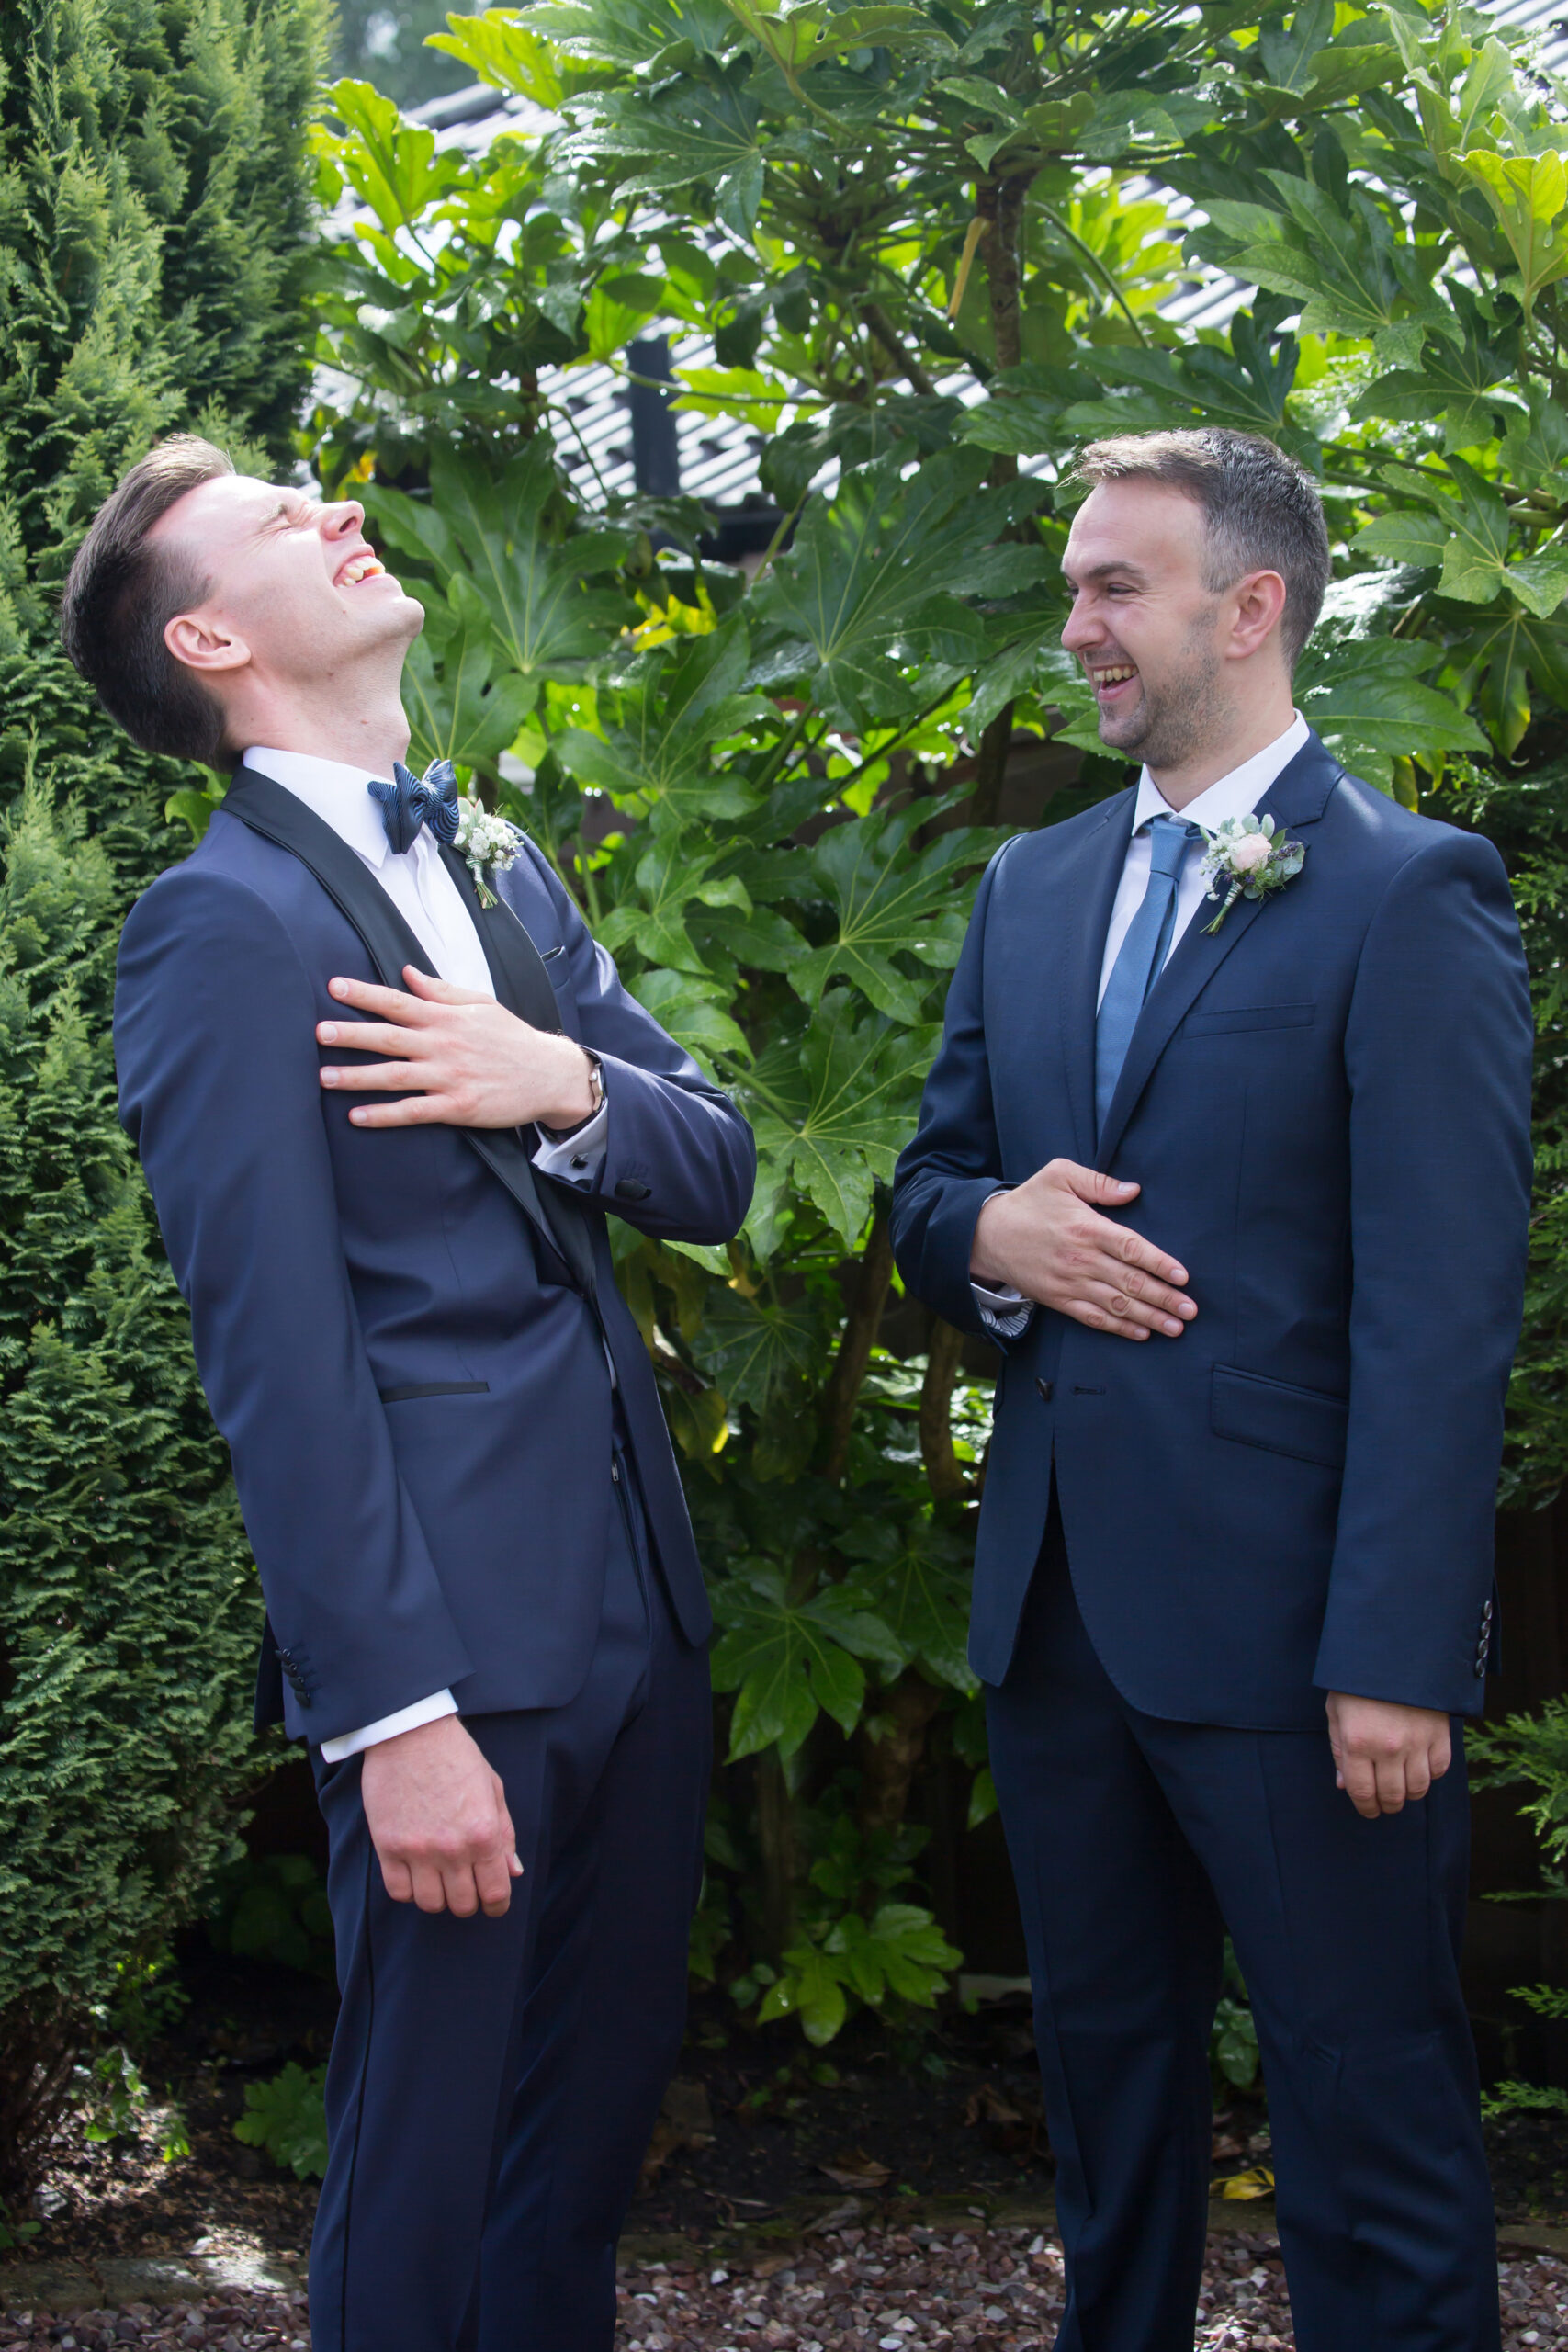 the groom and best man have a laugh together